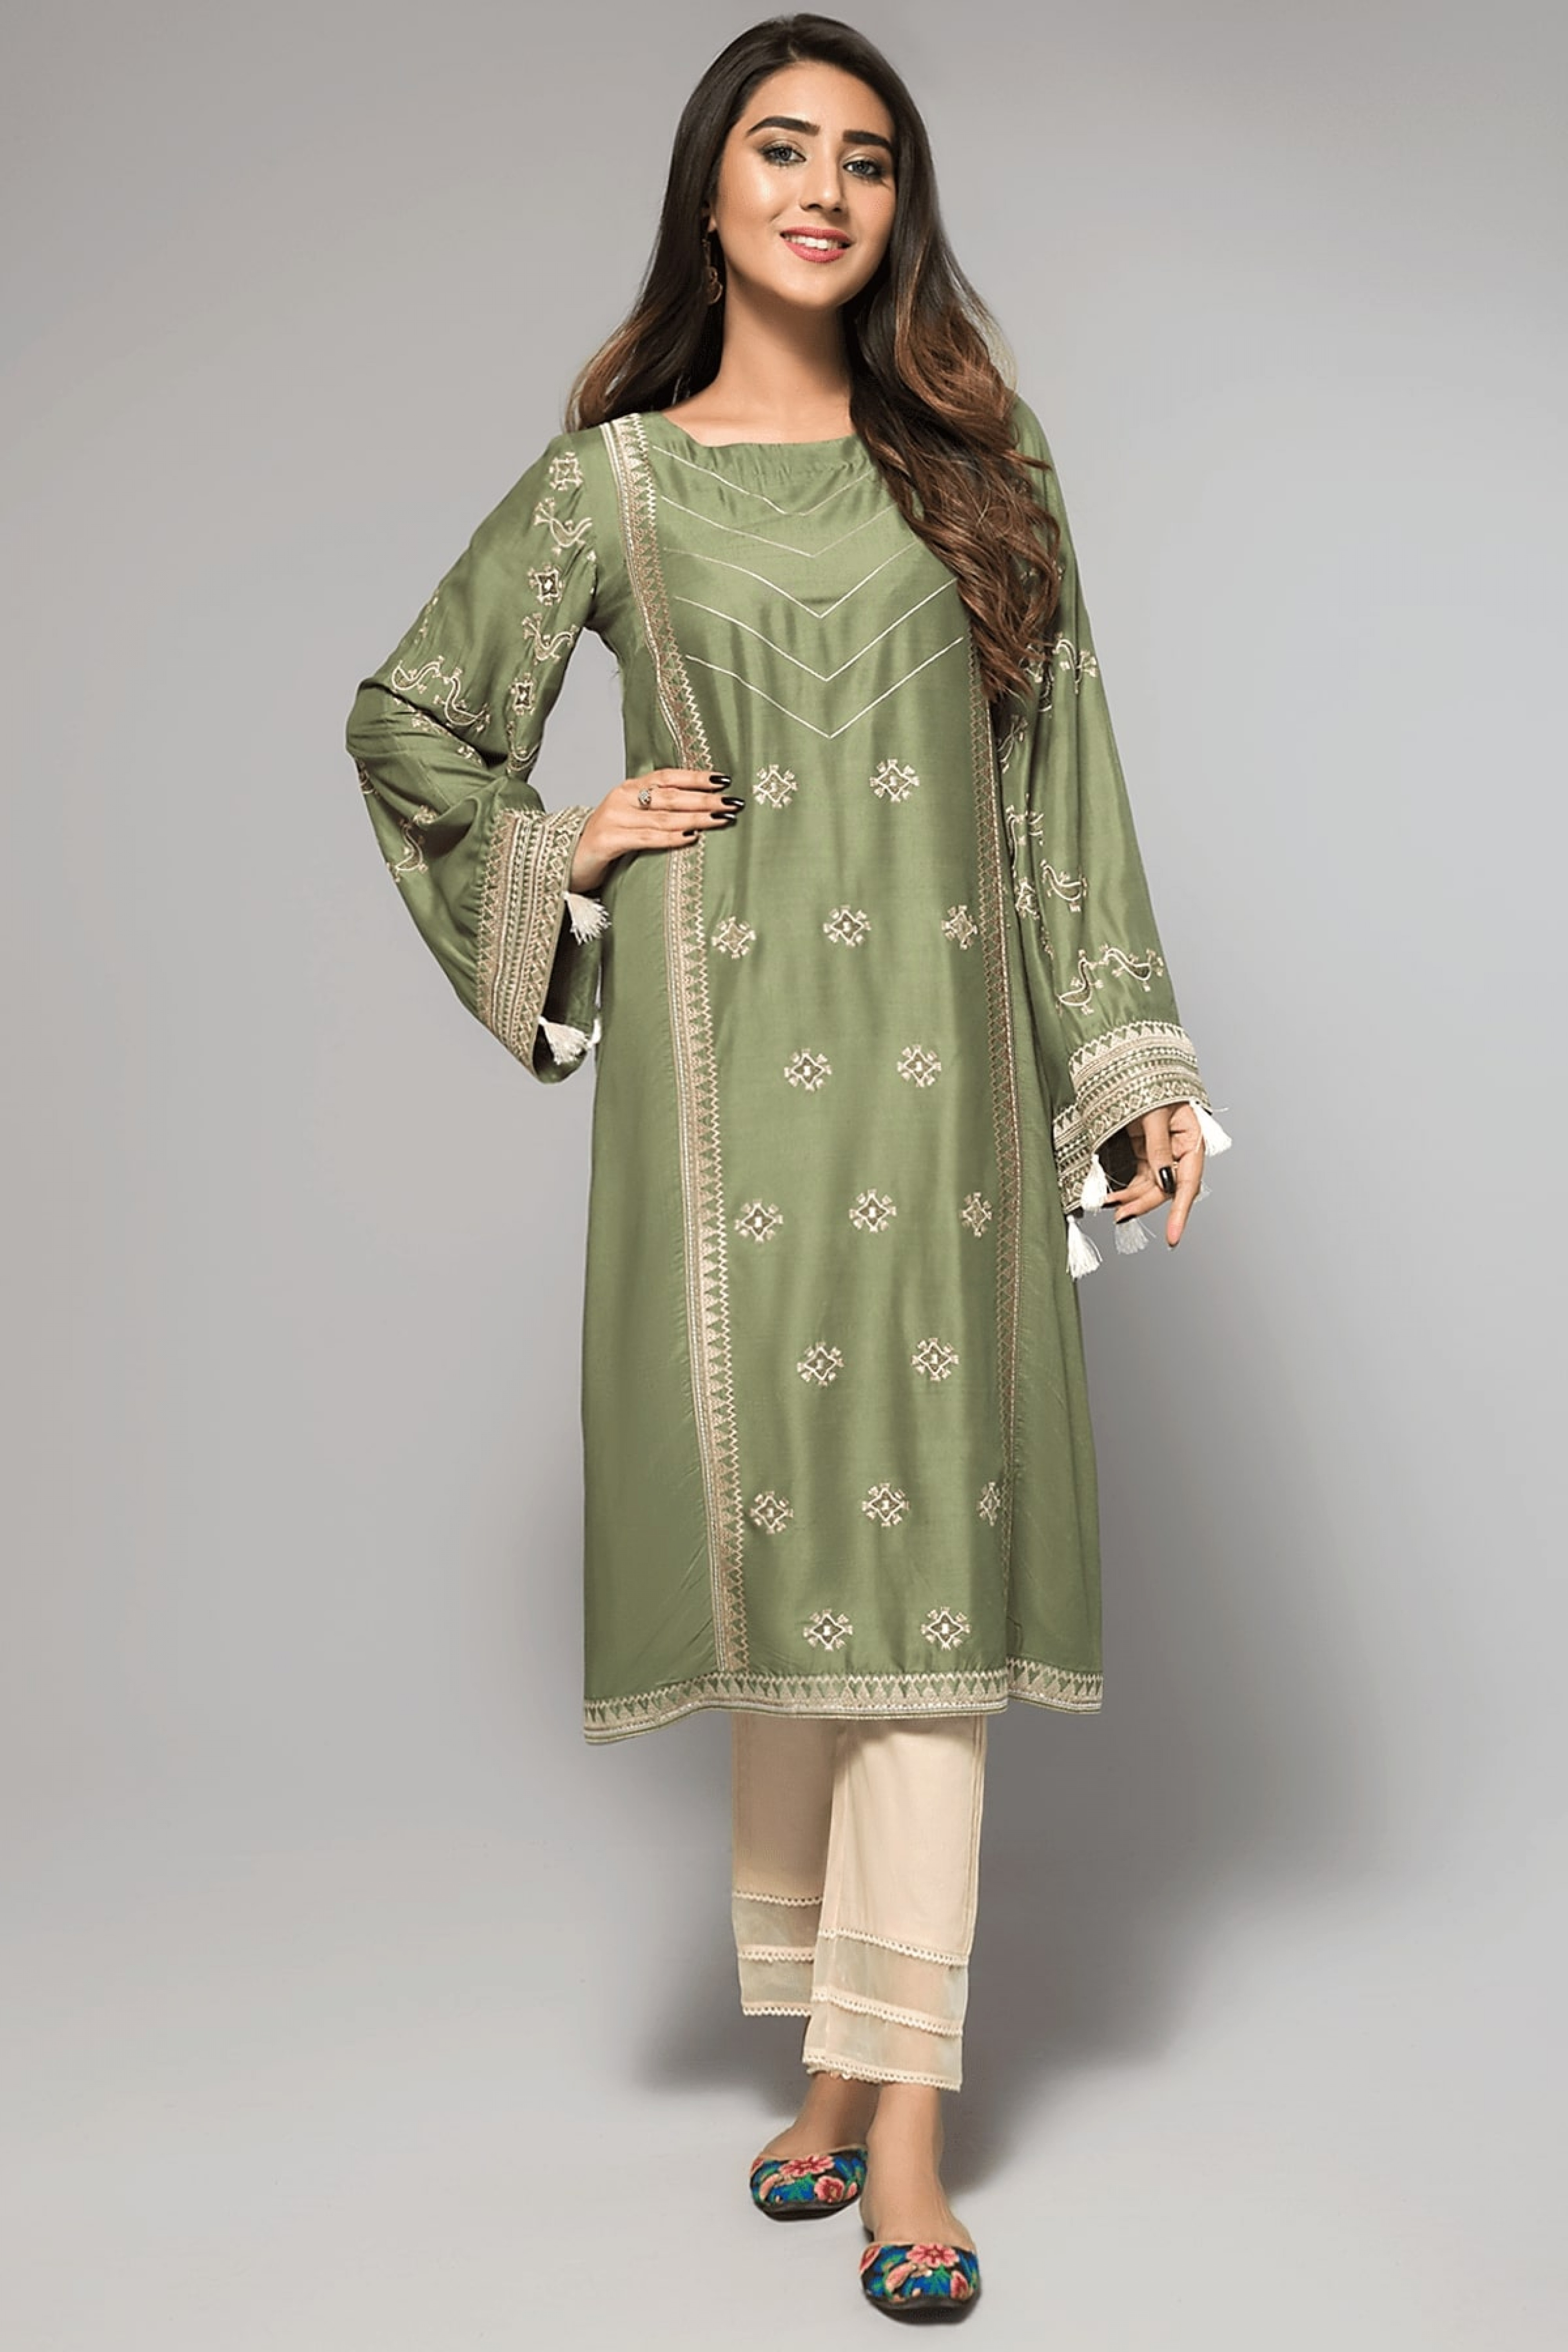 AMAZING GRACE(Embroidered Frock)